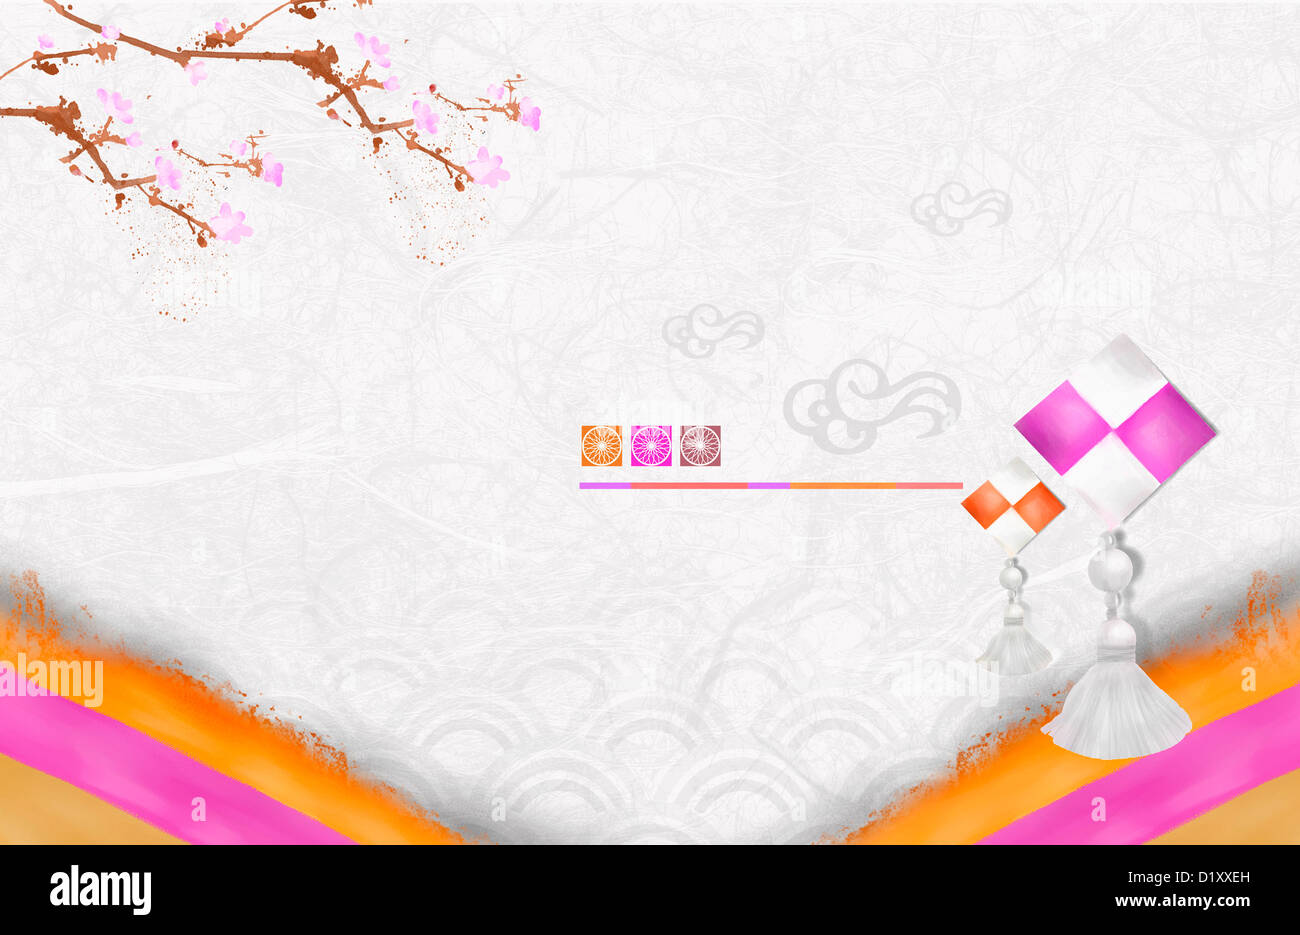 Ppt template illustration of korean traditional design stock photo stock photo ppt template illustration of korean traditional design toneelgroepblik Image collections